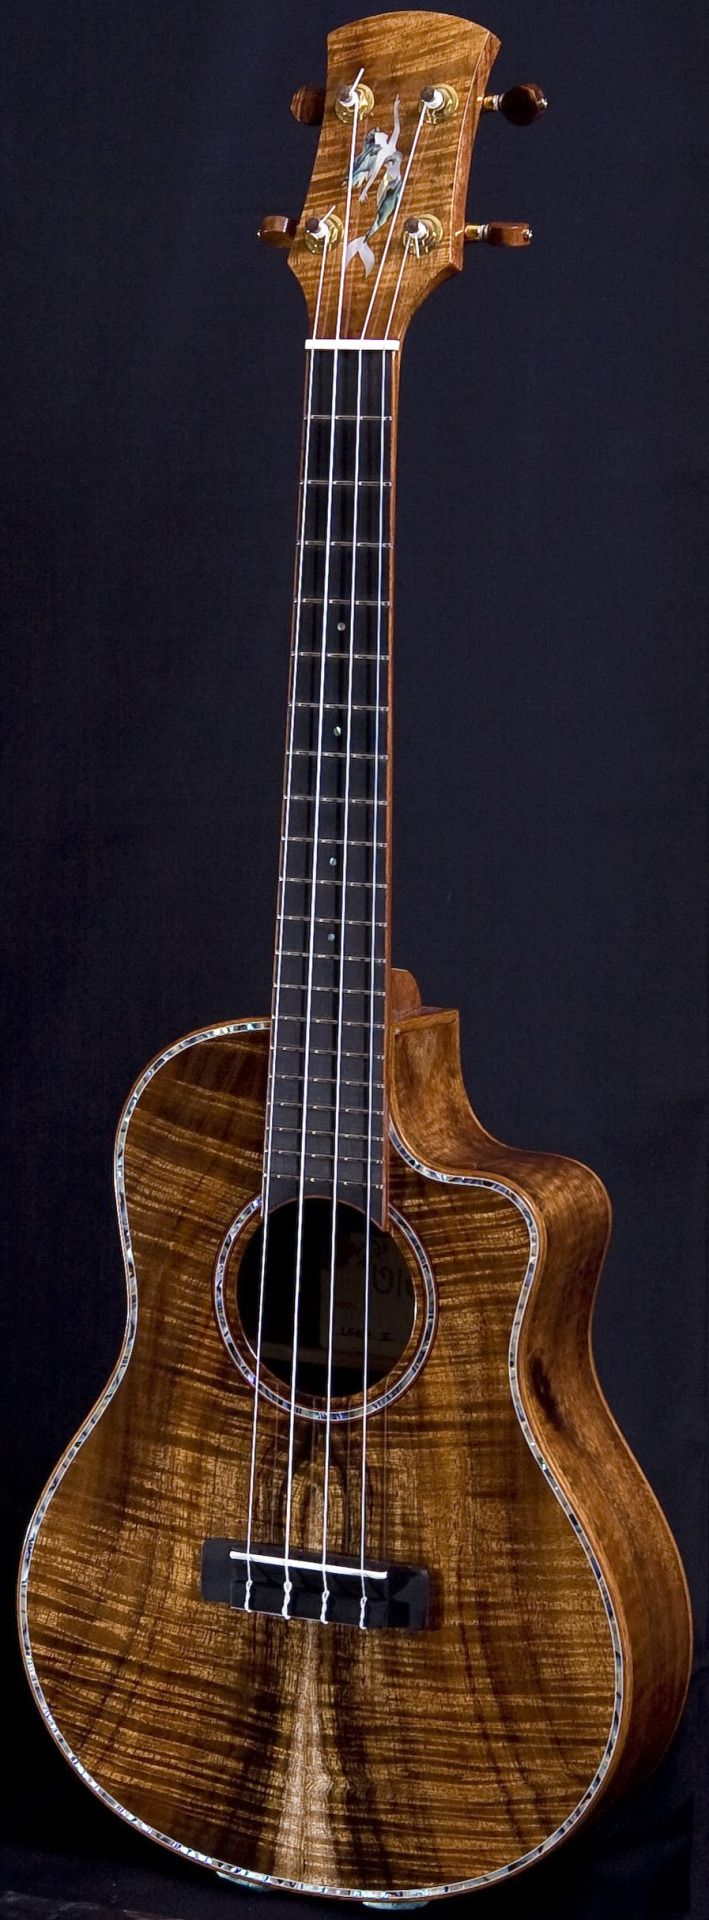 lardyfatboy: Uluru Lehua IIIc The Mermaid Tenor =Lardys Ukulele of the day - a year ago --- https://www.pinterest.com/lardyfatboy/